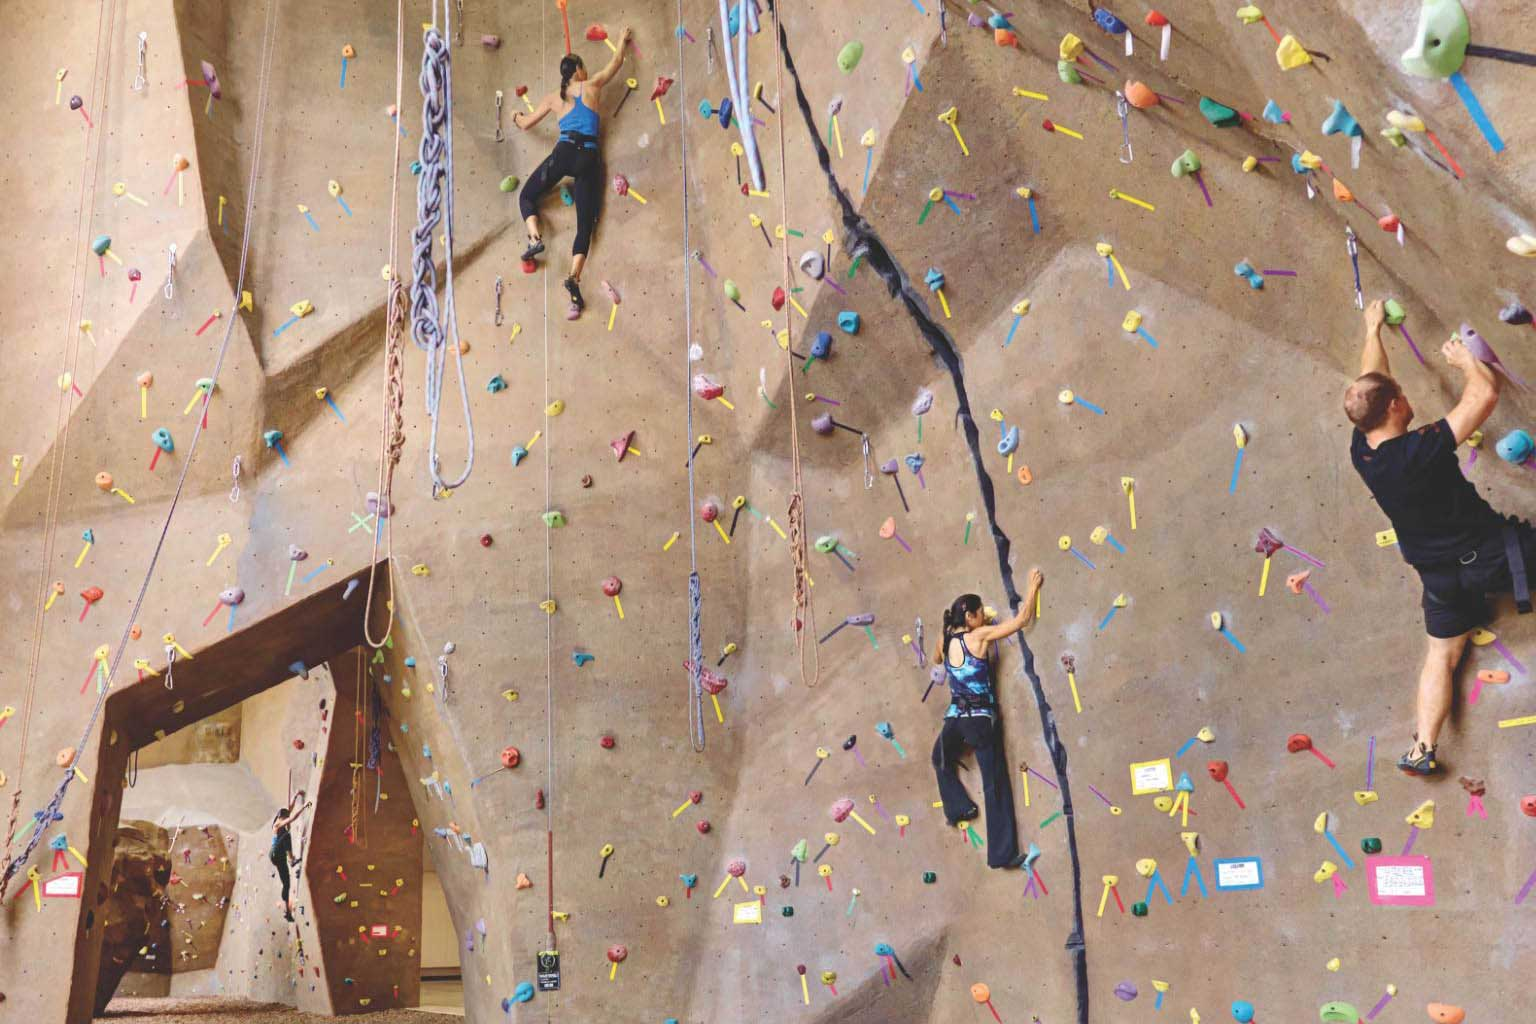 Three climbers at various heights, safely climbing the rock wall using ropes